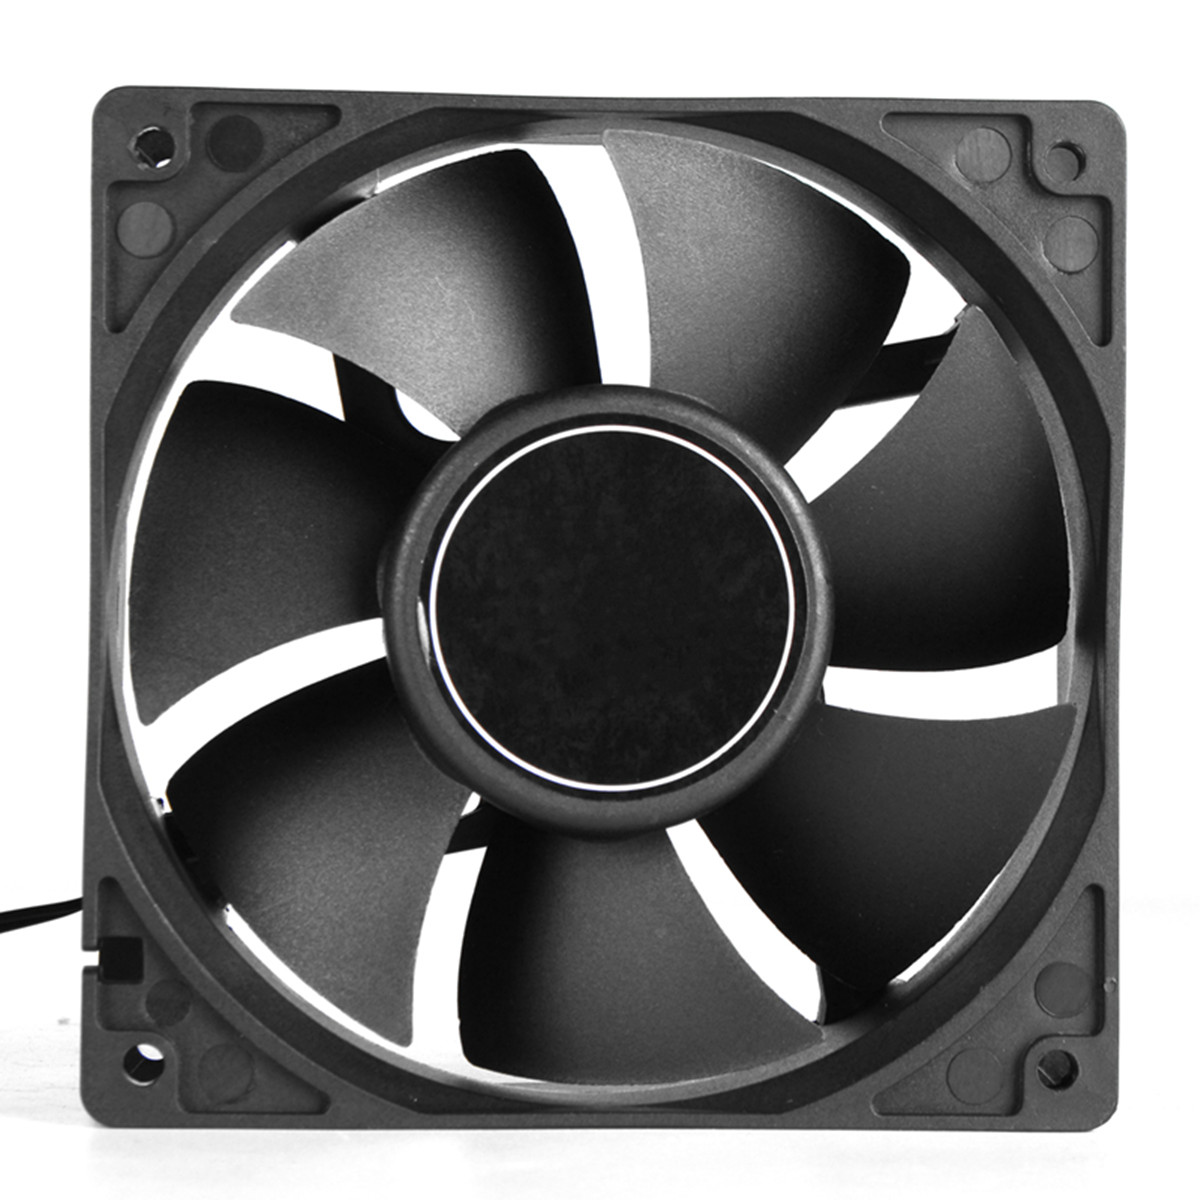 4Pin 12038 Cooling Fan 12V 1.4A Server Inverter Fan Two Ball Bearing 4200rpm 120*120*38mm for Computer Accessories